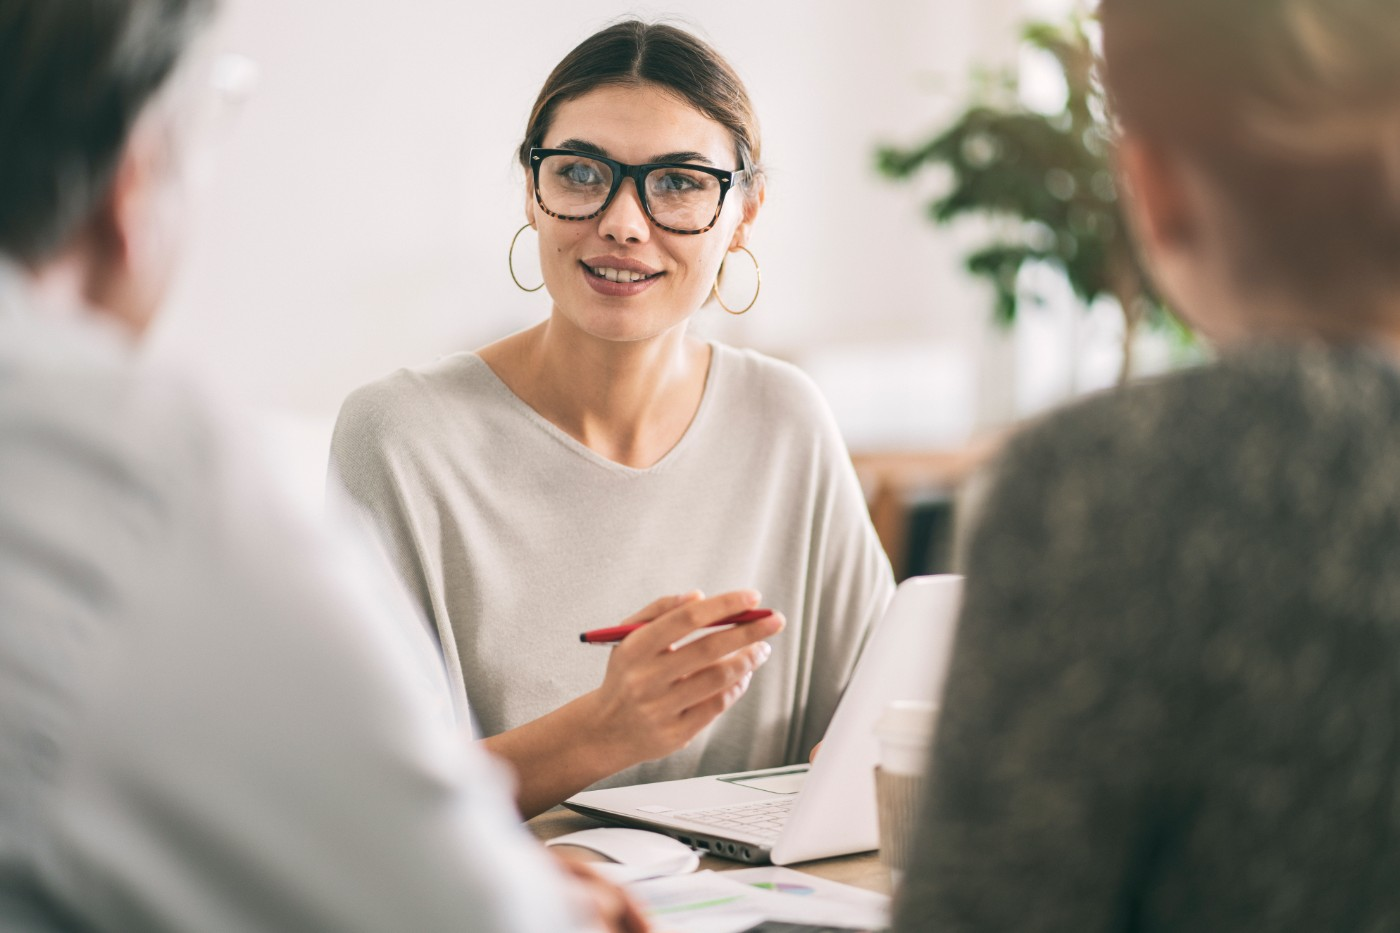 https://tickertapecdn.tdameritrade.com/assets/images/pages/md/Financial advisor: When to consider hiring one